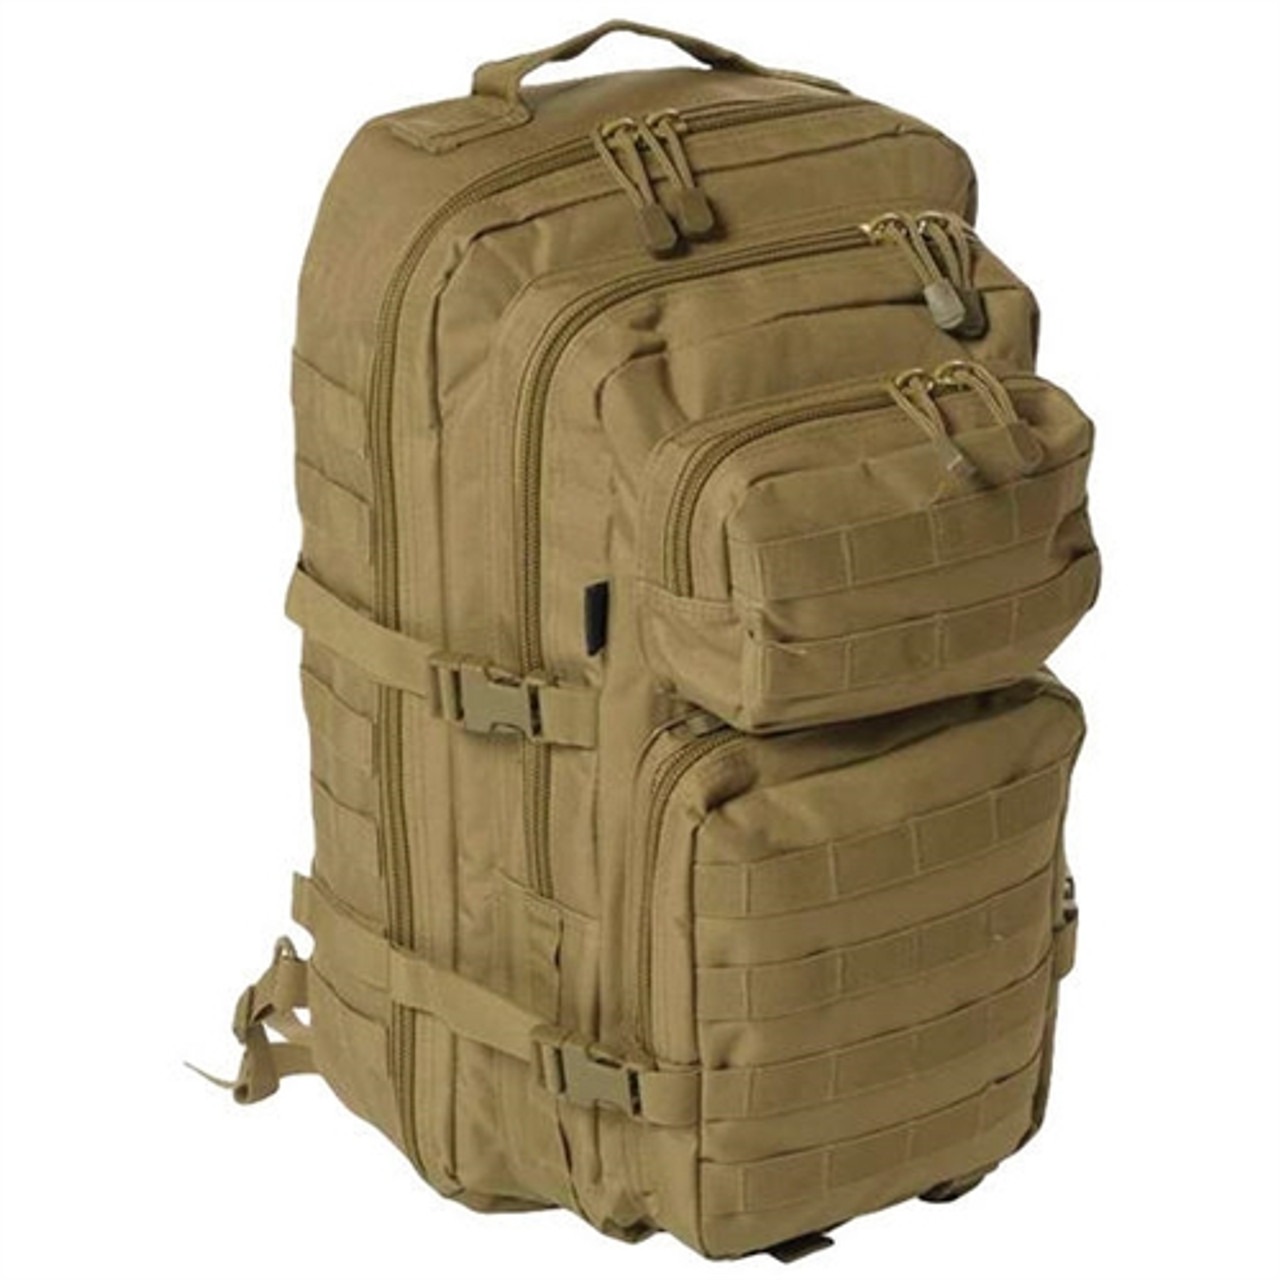 MIL-TEC Single Strap Large Assault Pack from Hessen Antique